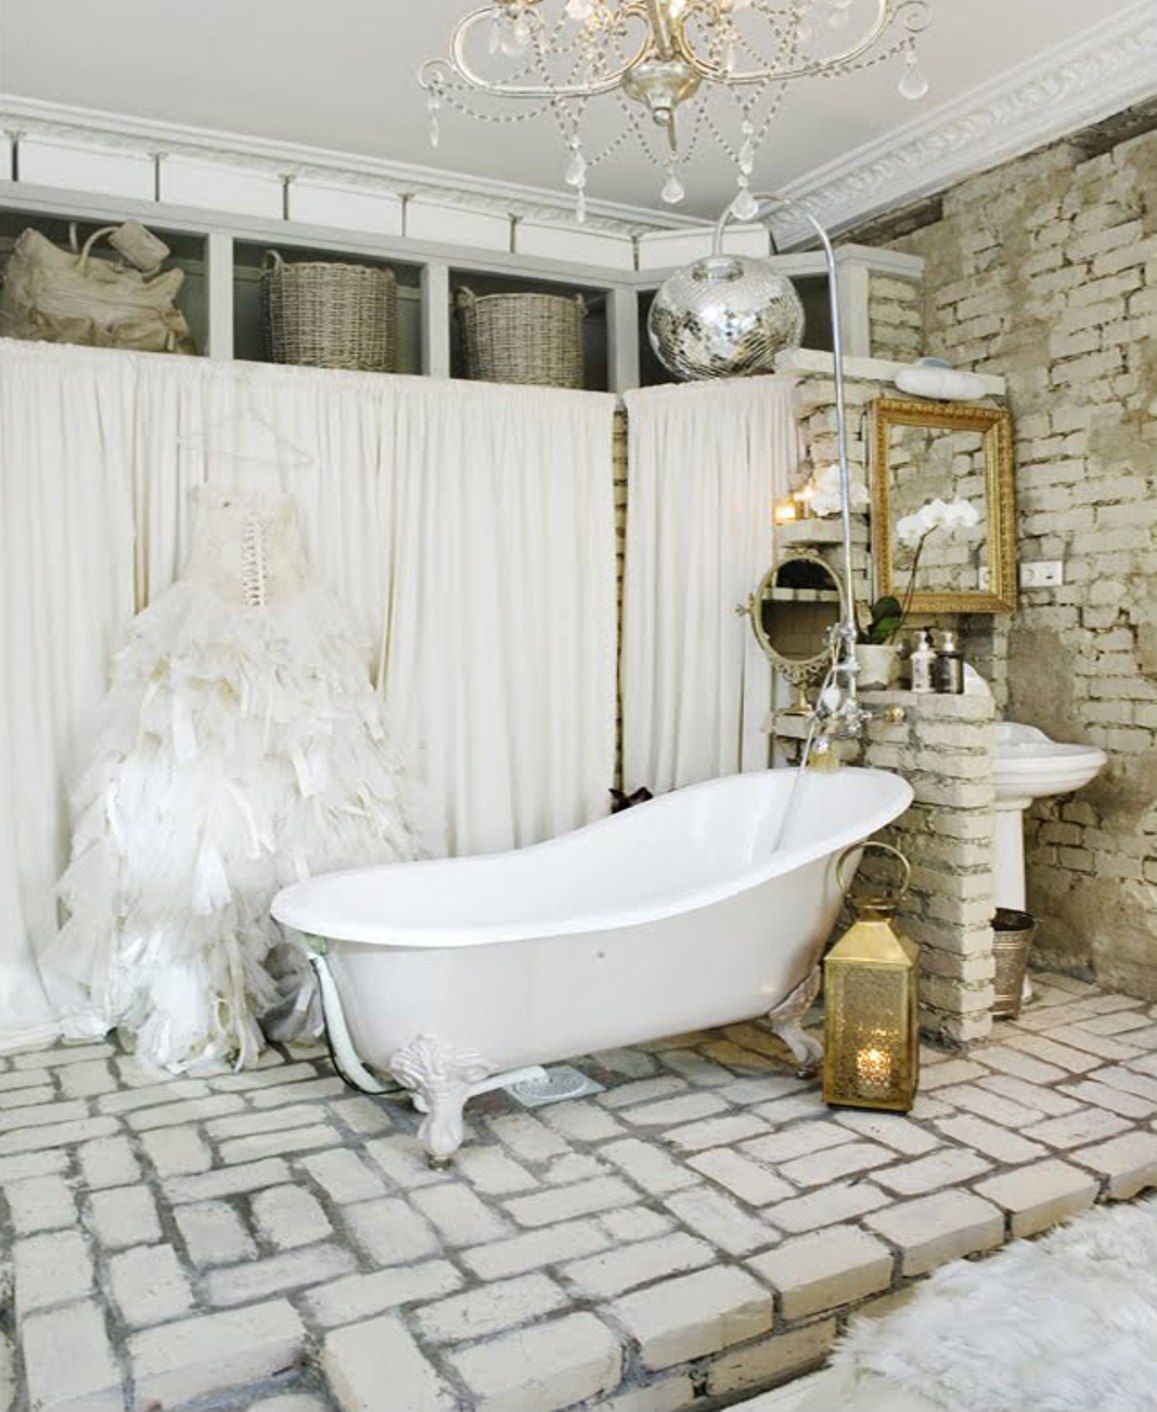 Vintage Bathroom Theme Idea With Brick Wall And